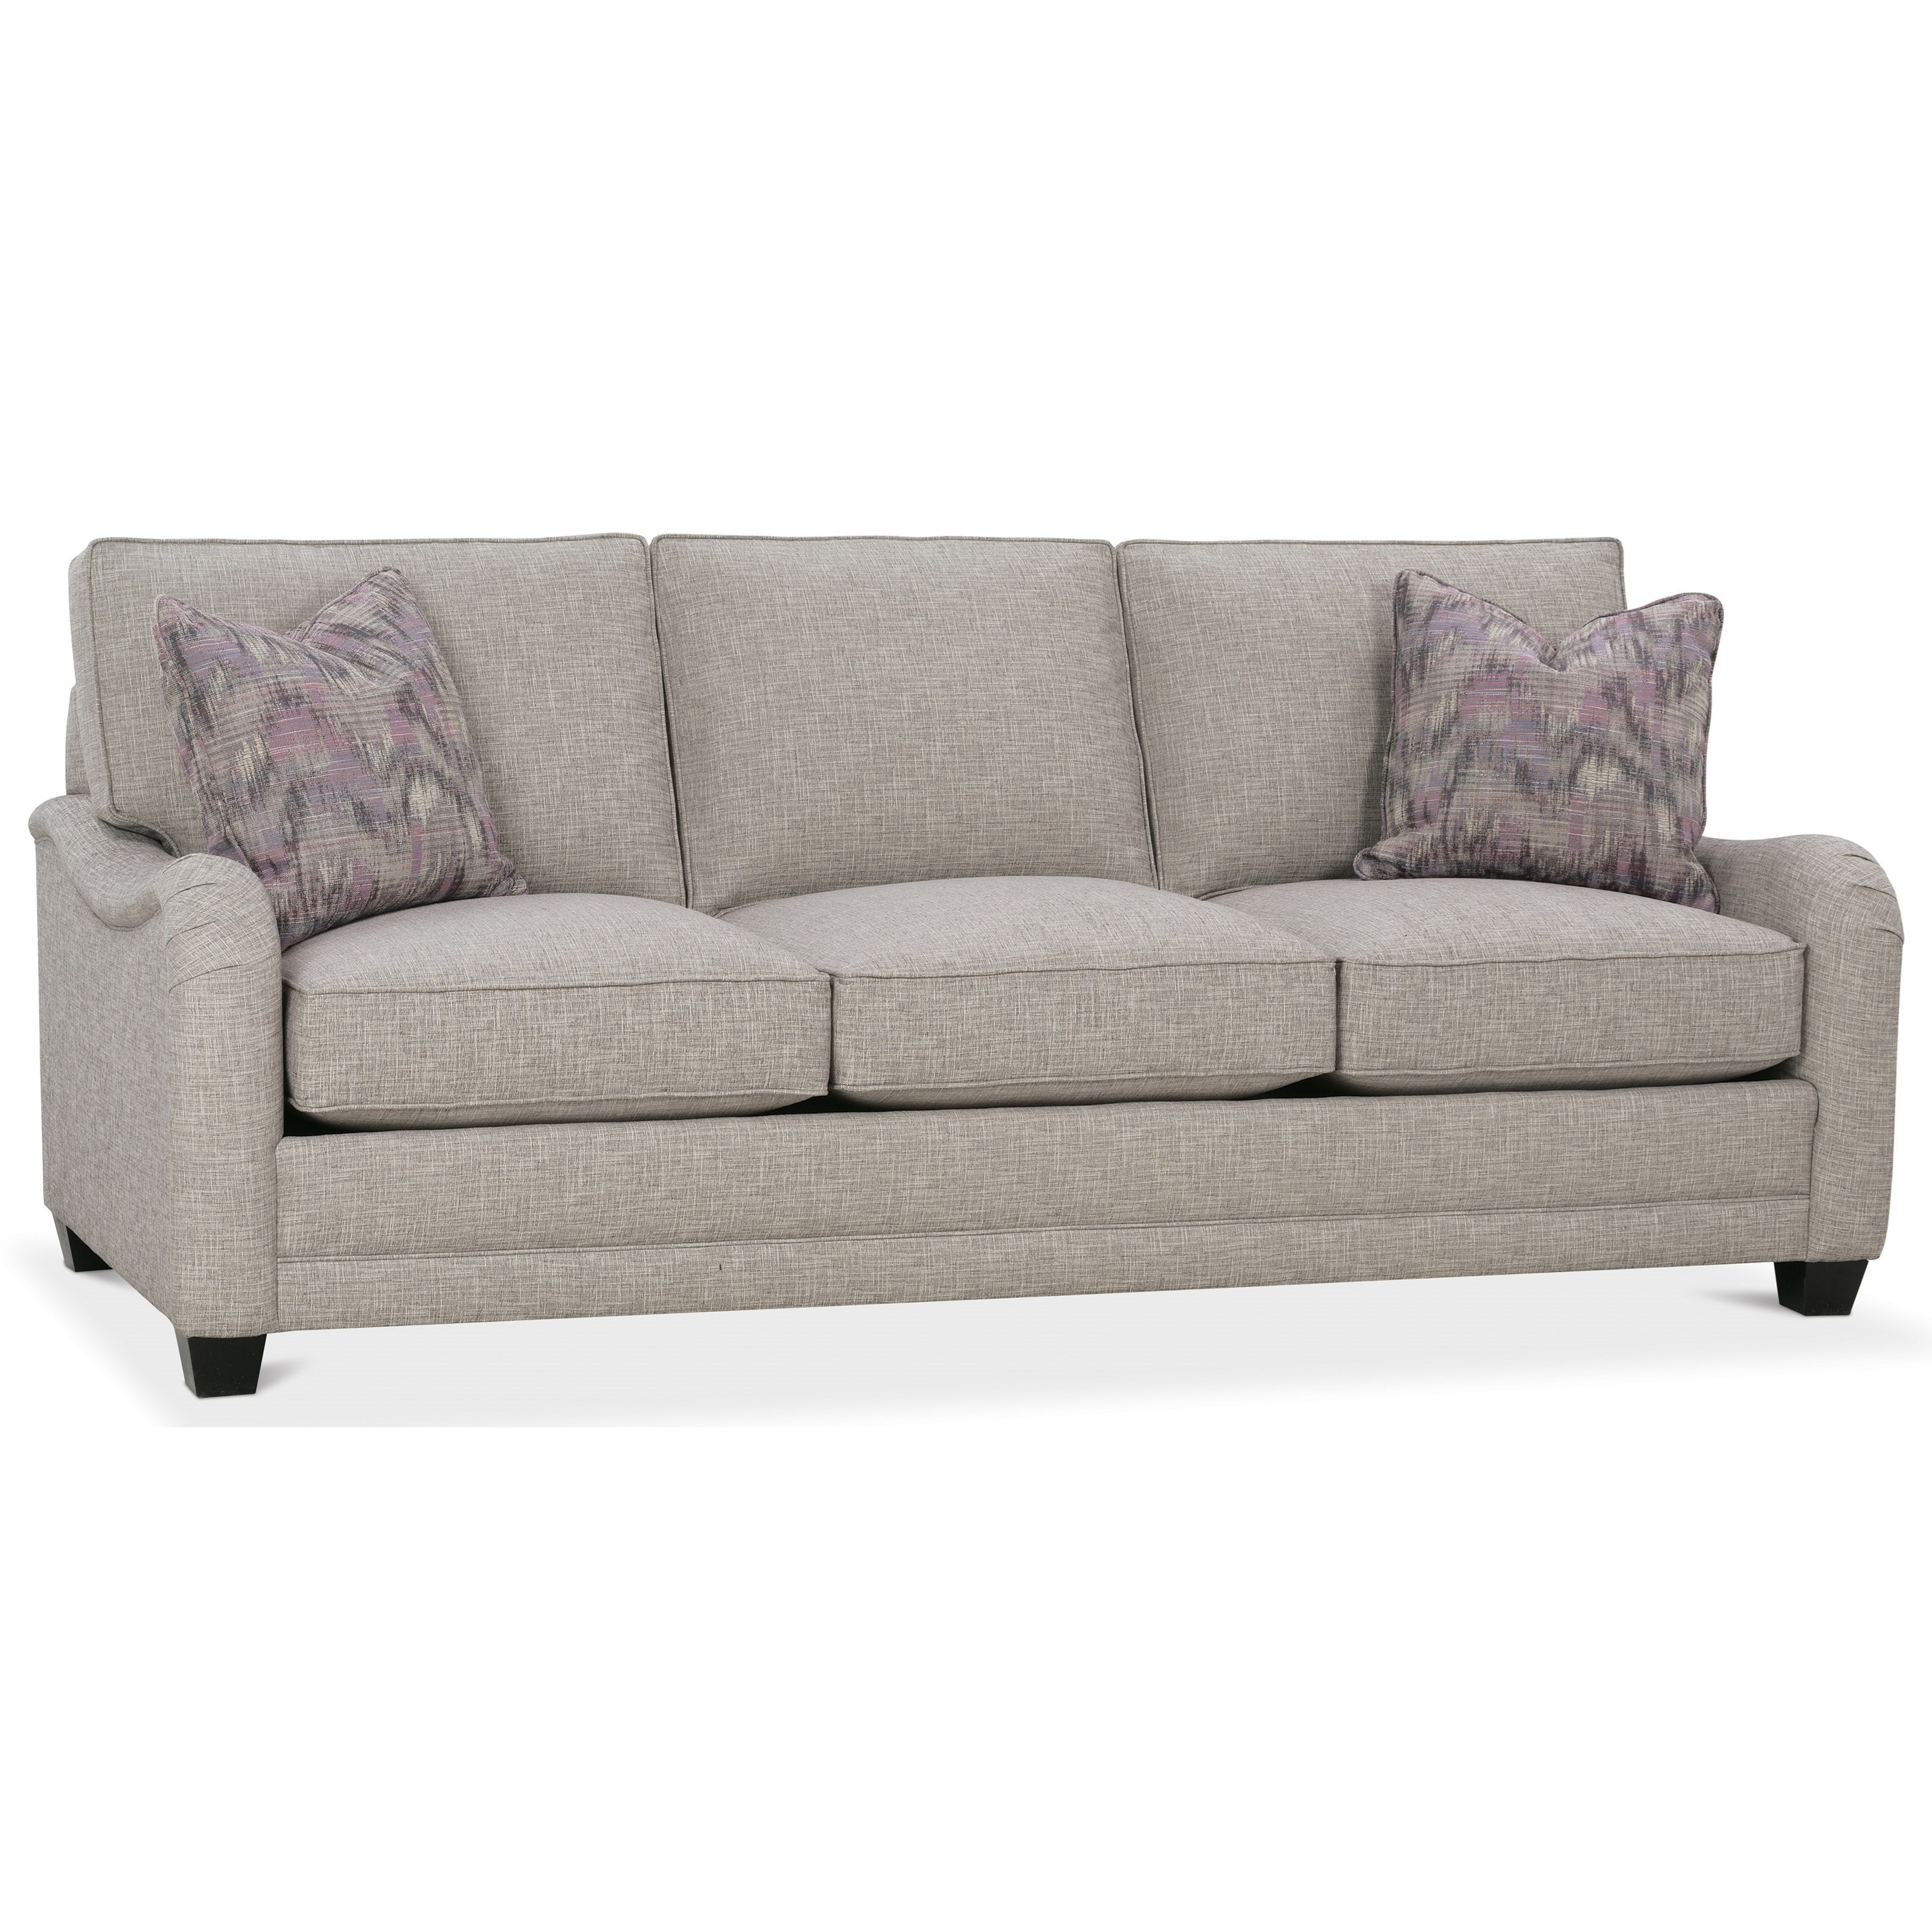 Nantucket 2 seat slipcover queen sleeper sofa rowe furniture rowe - Rowe My Style I Sofa With English Arms Tapered Legs And Knife Style Back